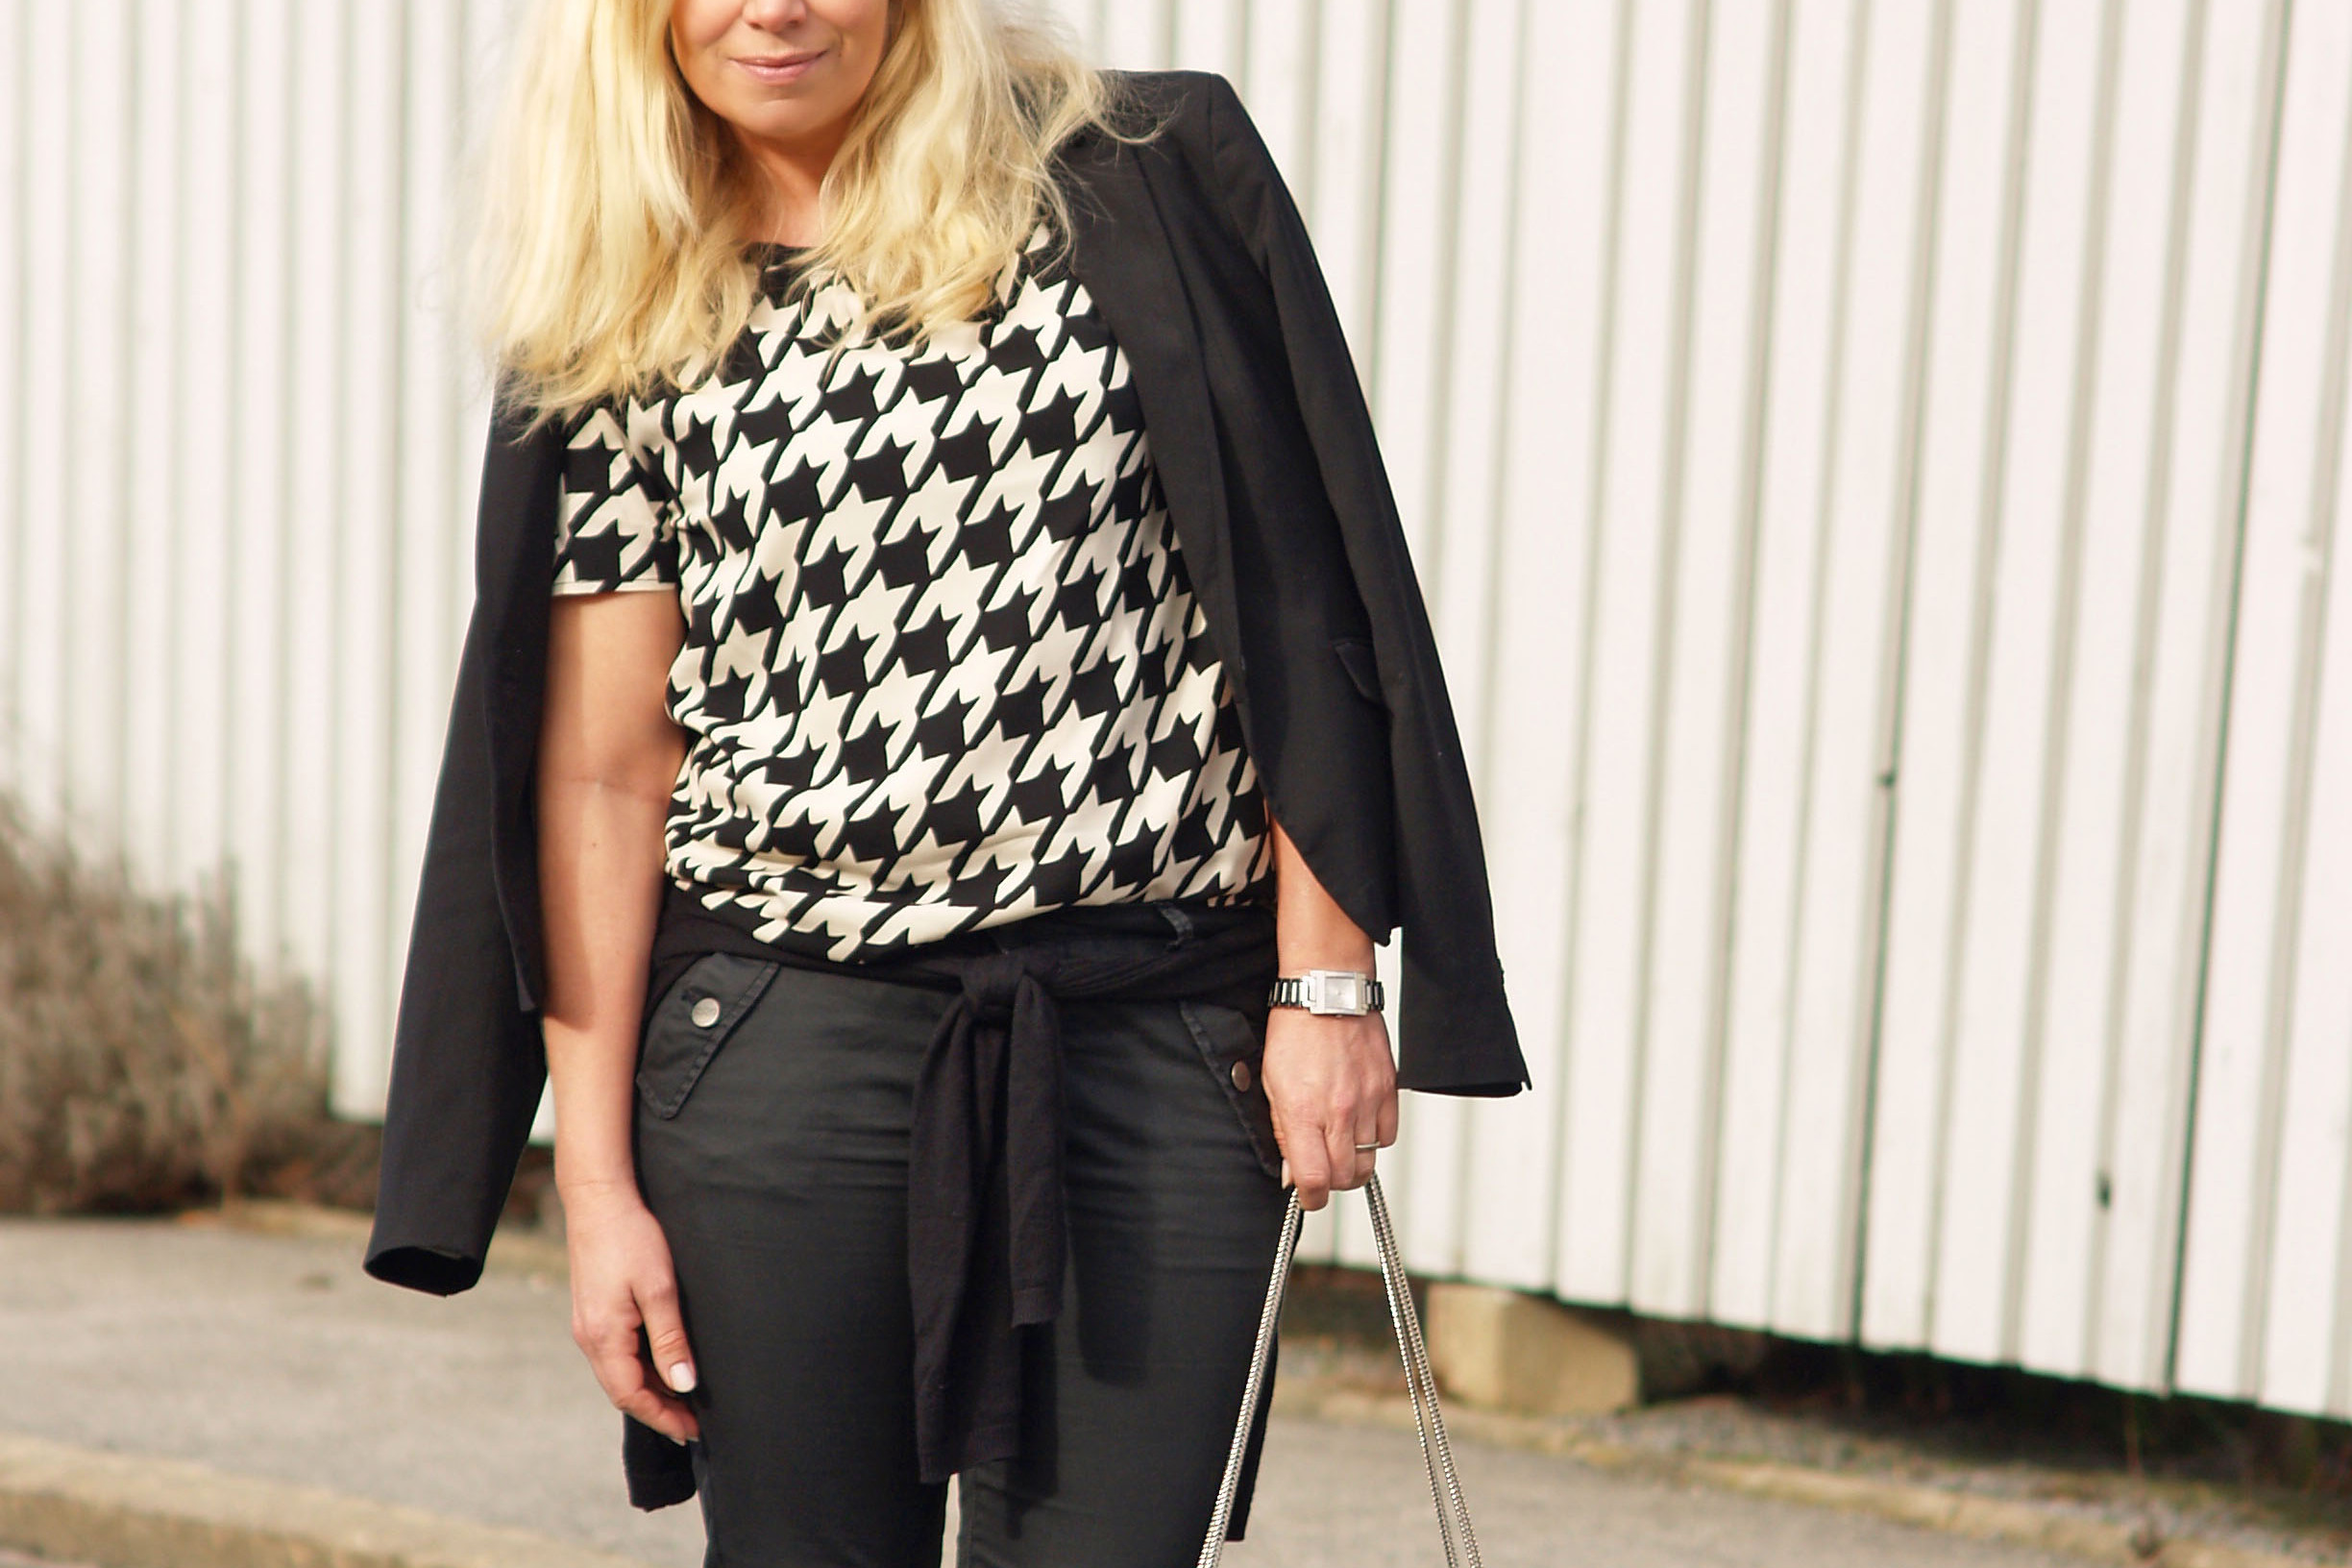 Black and beige blouse from Six Ames and a Betty bag from Saint Laurent